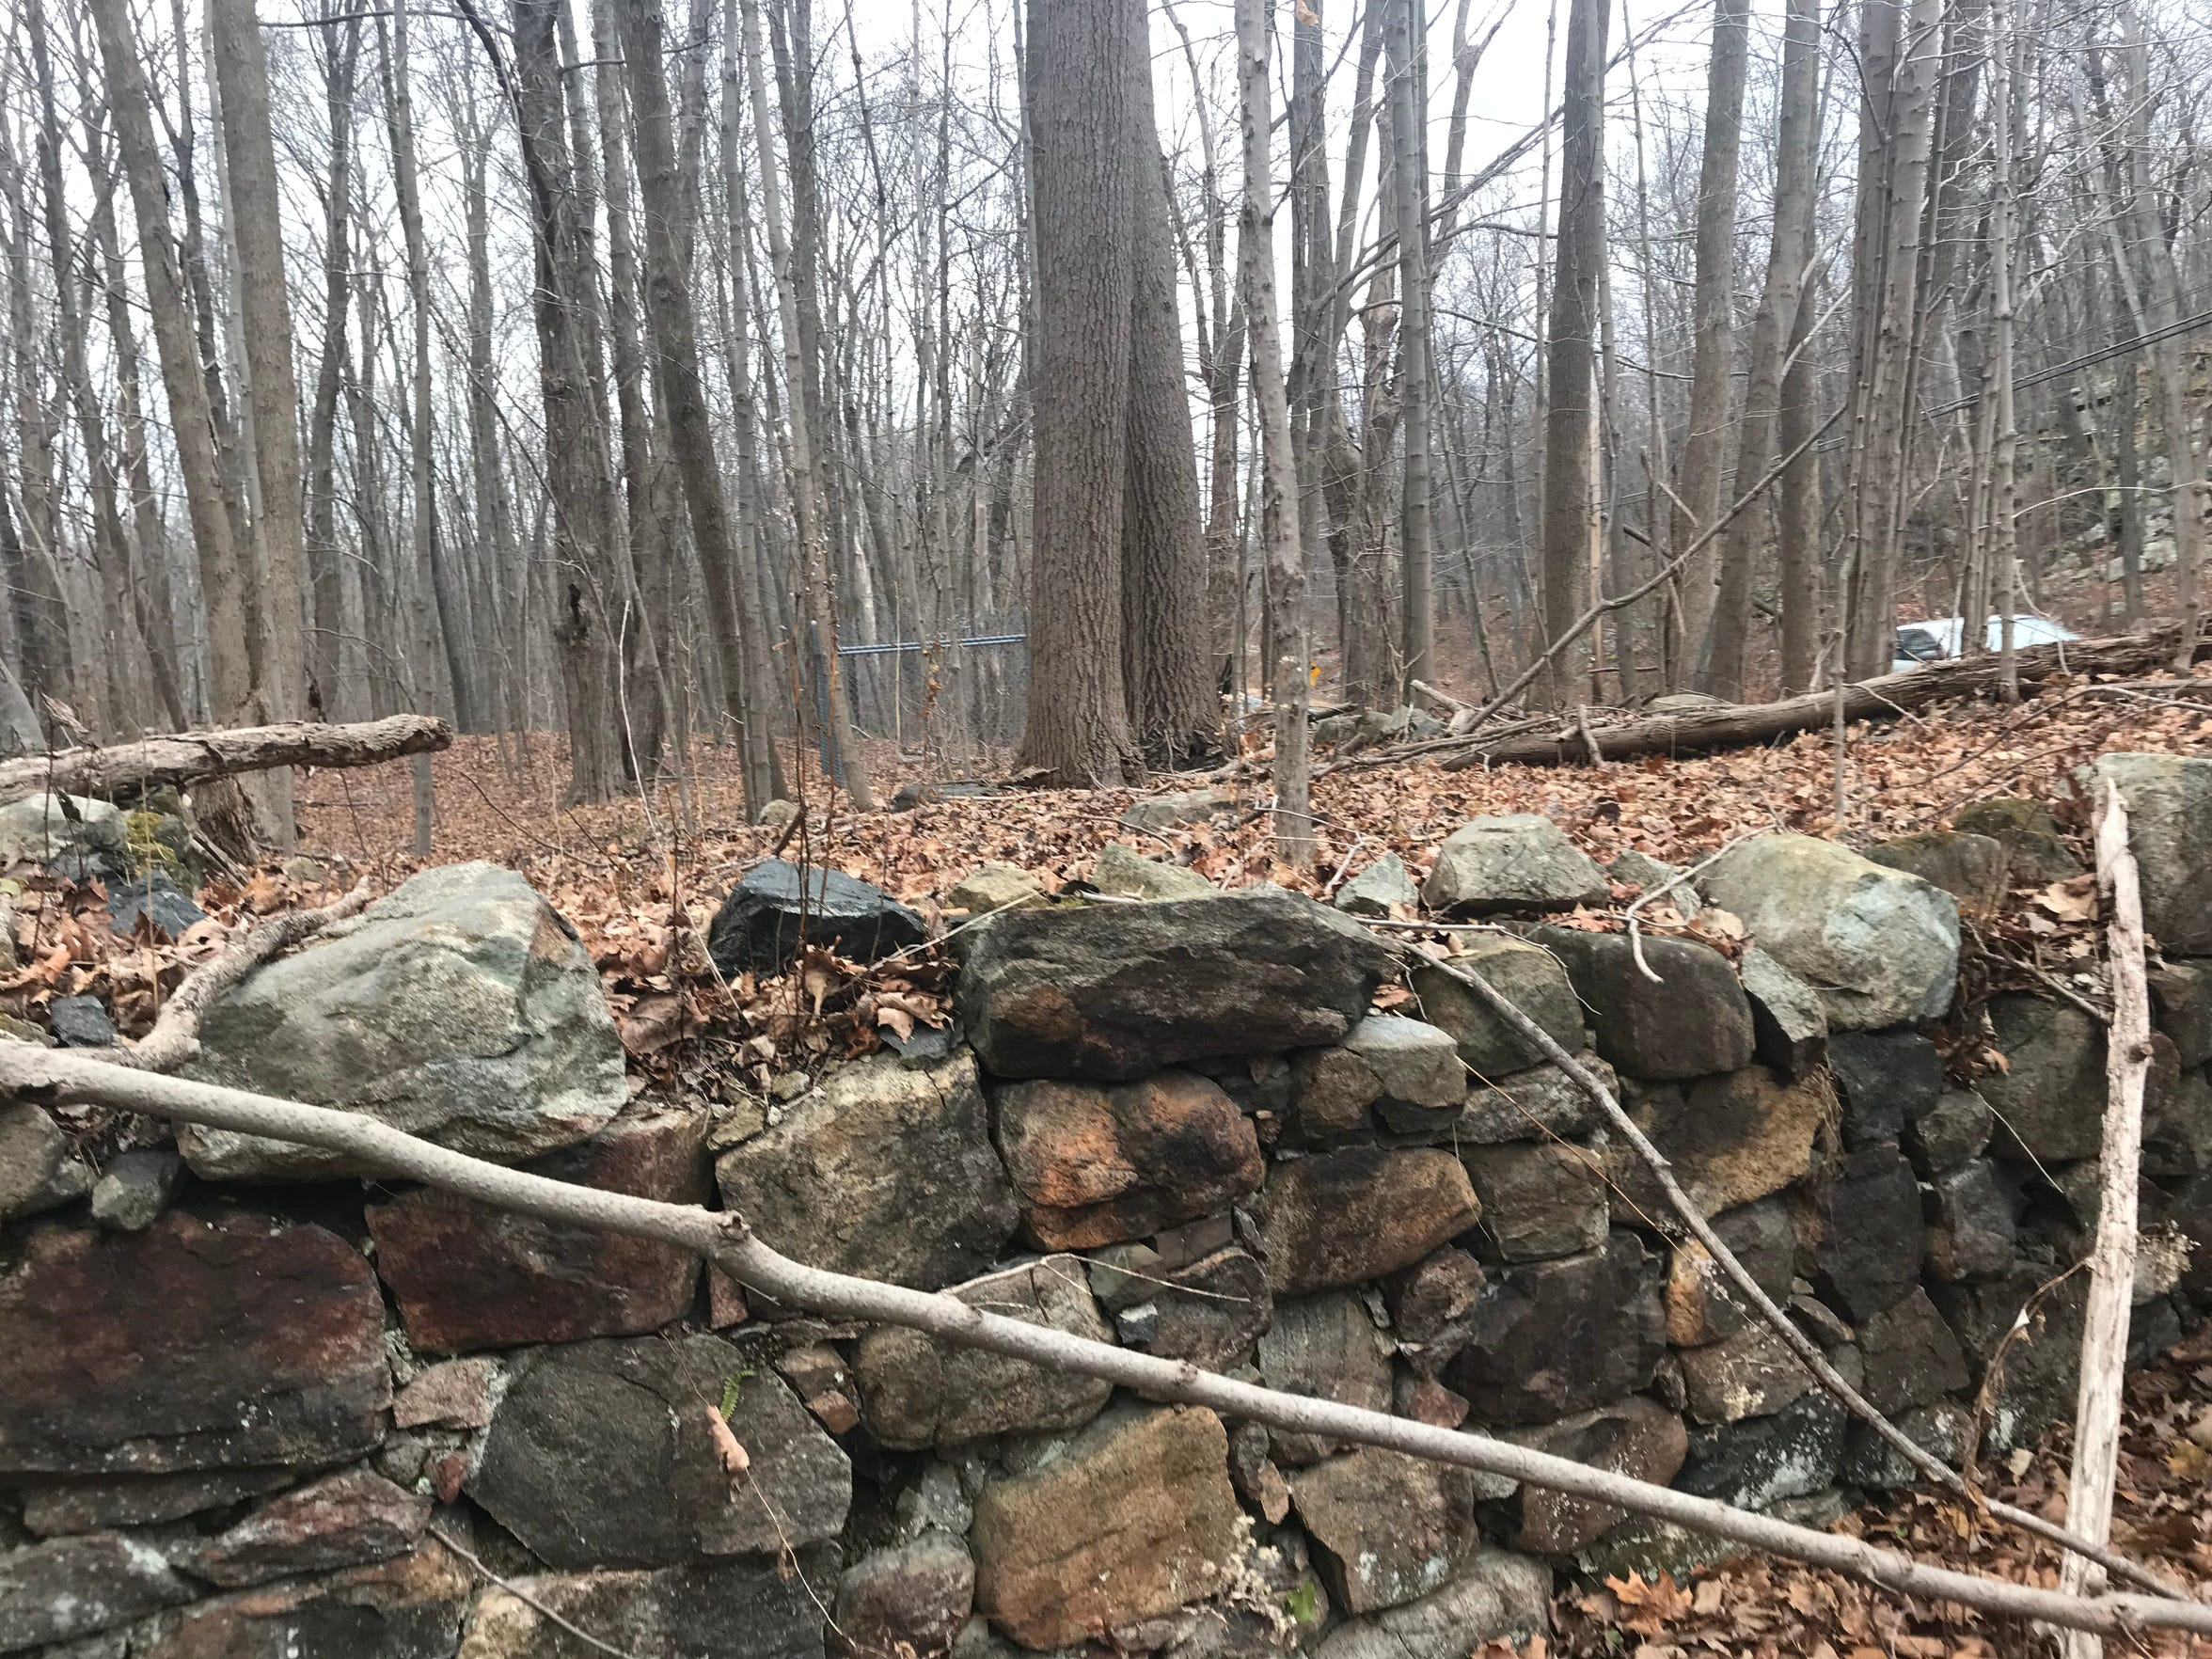 Stone walls from the Dodge Mine operation in Jefferson Township, N.J. lie just off Weldon Road. The road runs through a county-owned preservation as seen on Dec. 8, 2017.